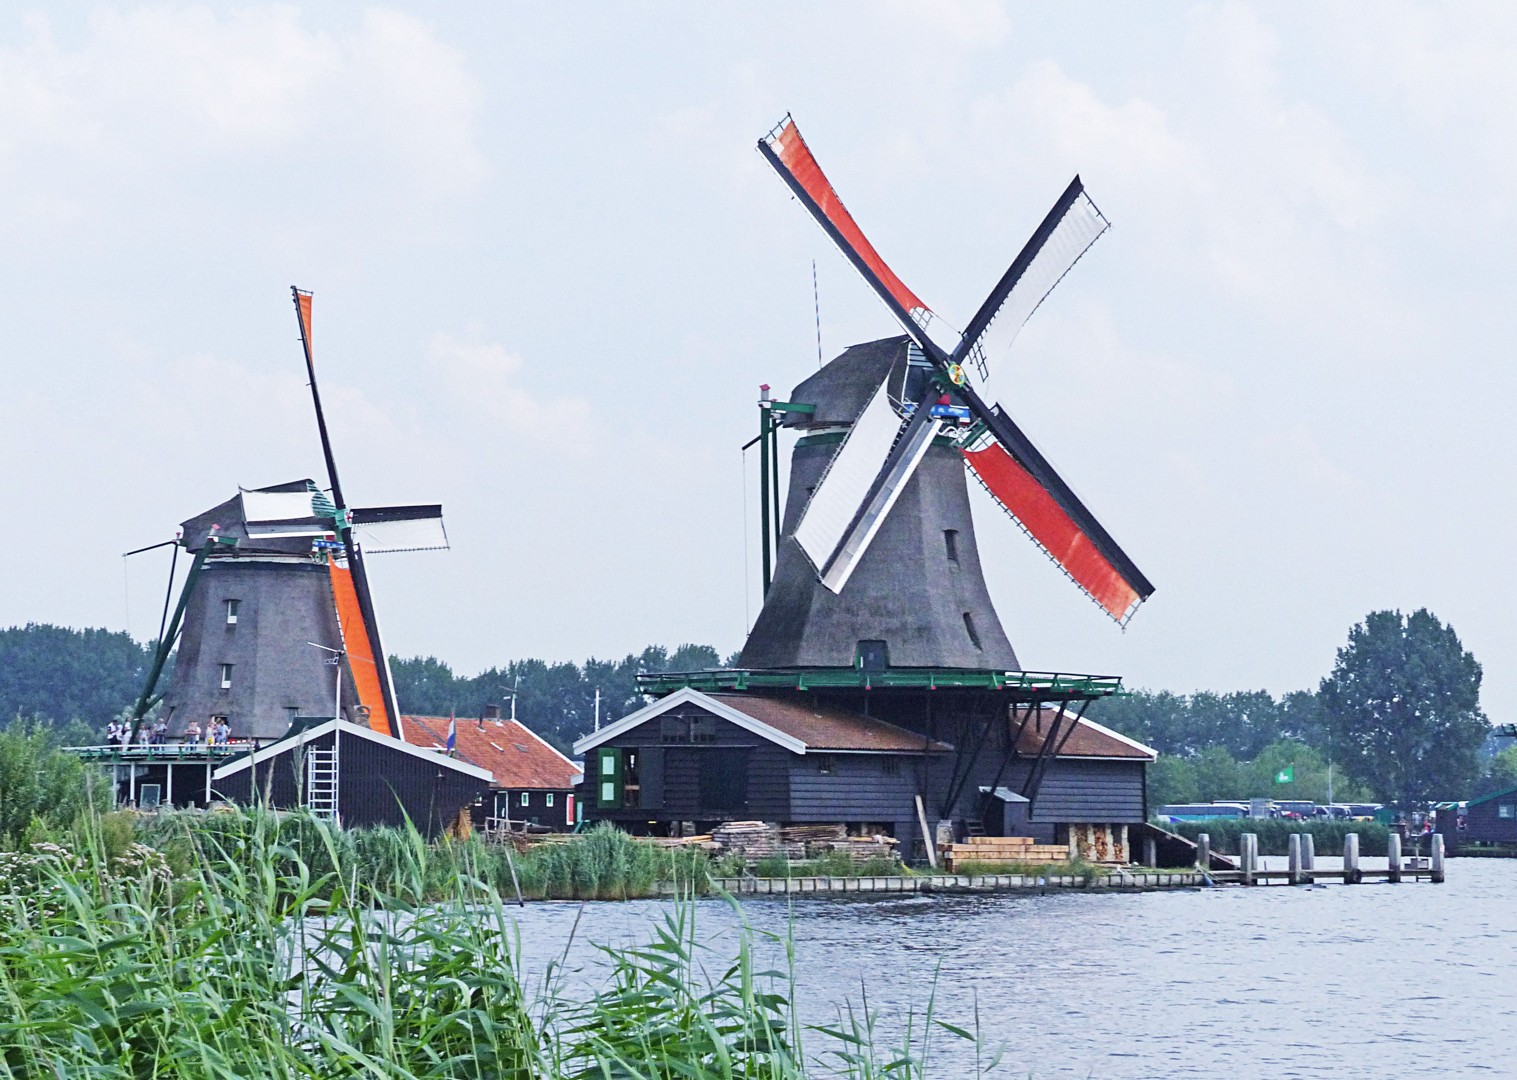 zaanse-schans-cycling-holiday-in-holland-bike-and-barge-holiday.jpg - Holland - Windmills and Golden Beaches - Bike and Barge Holiday - Leisure Cycling